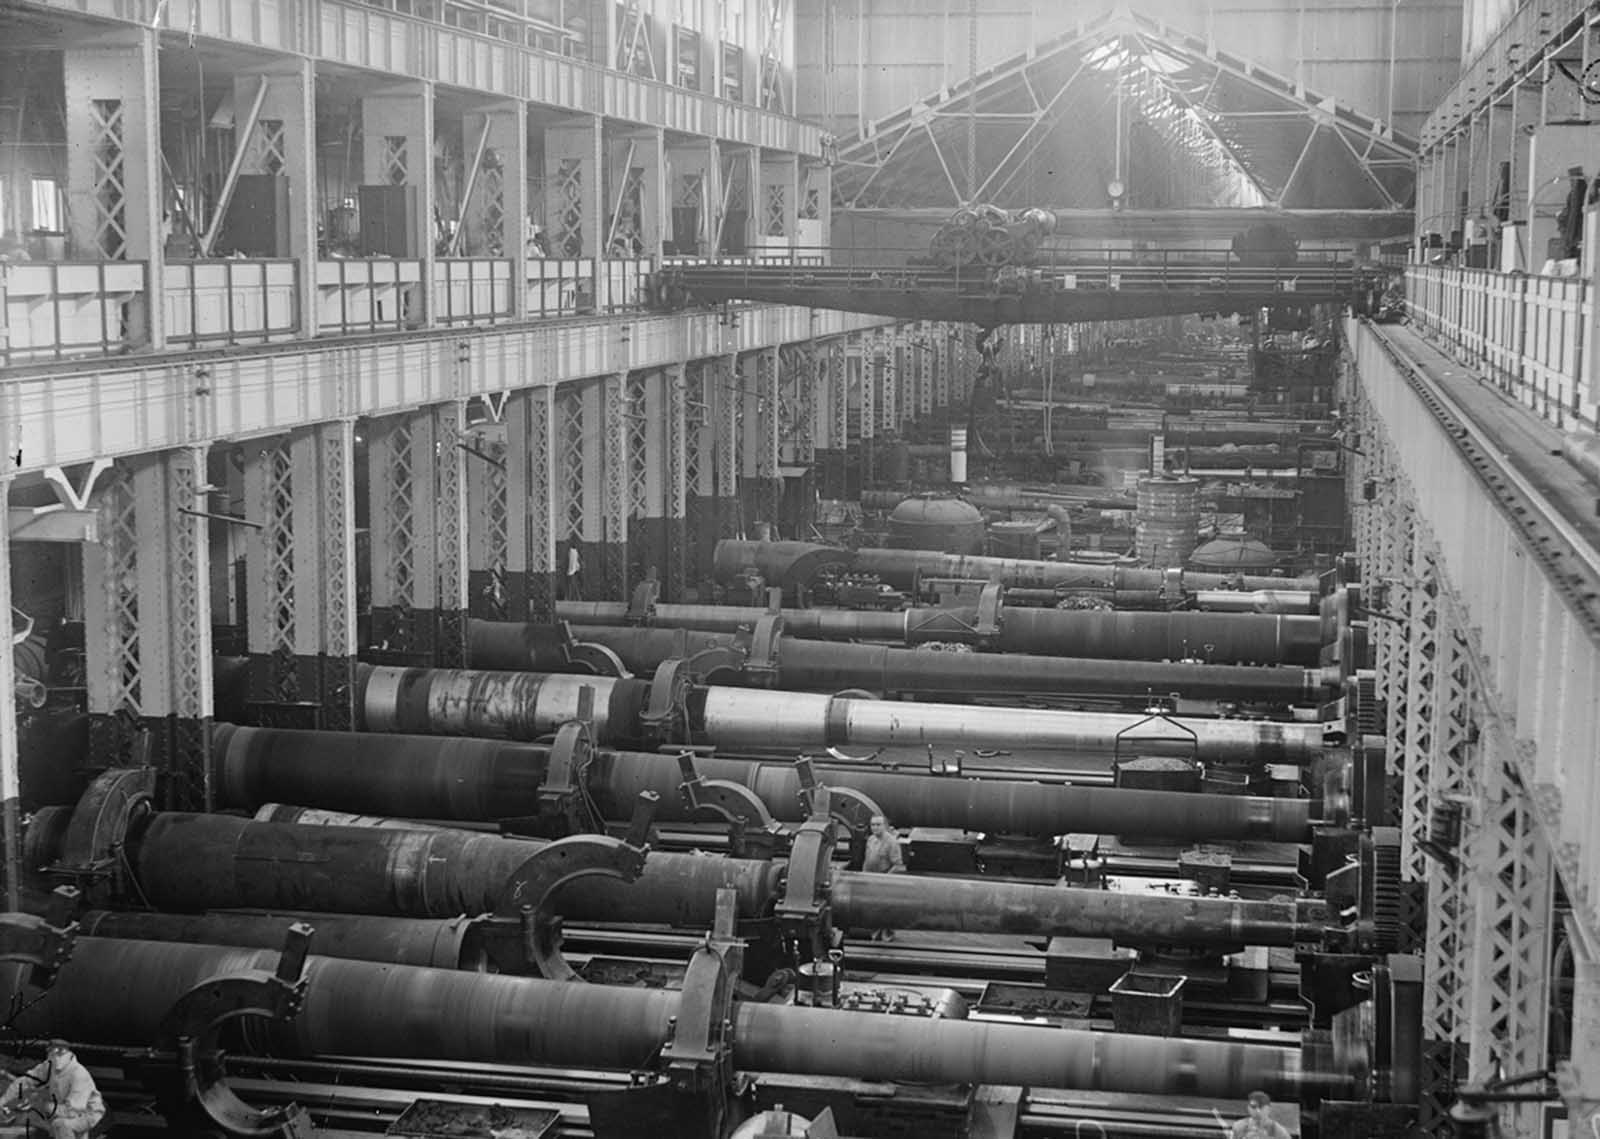 U.S. Navy Yard, Washington, D.C., the Big Gun section of the shops, in 1917.